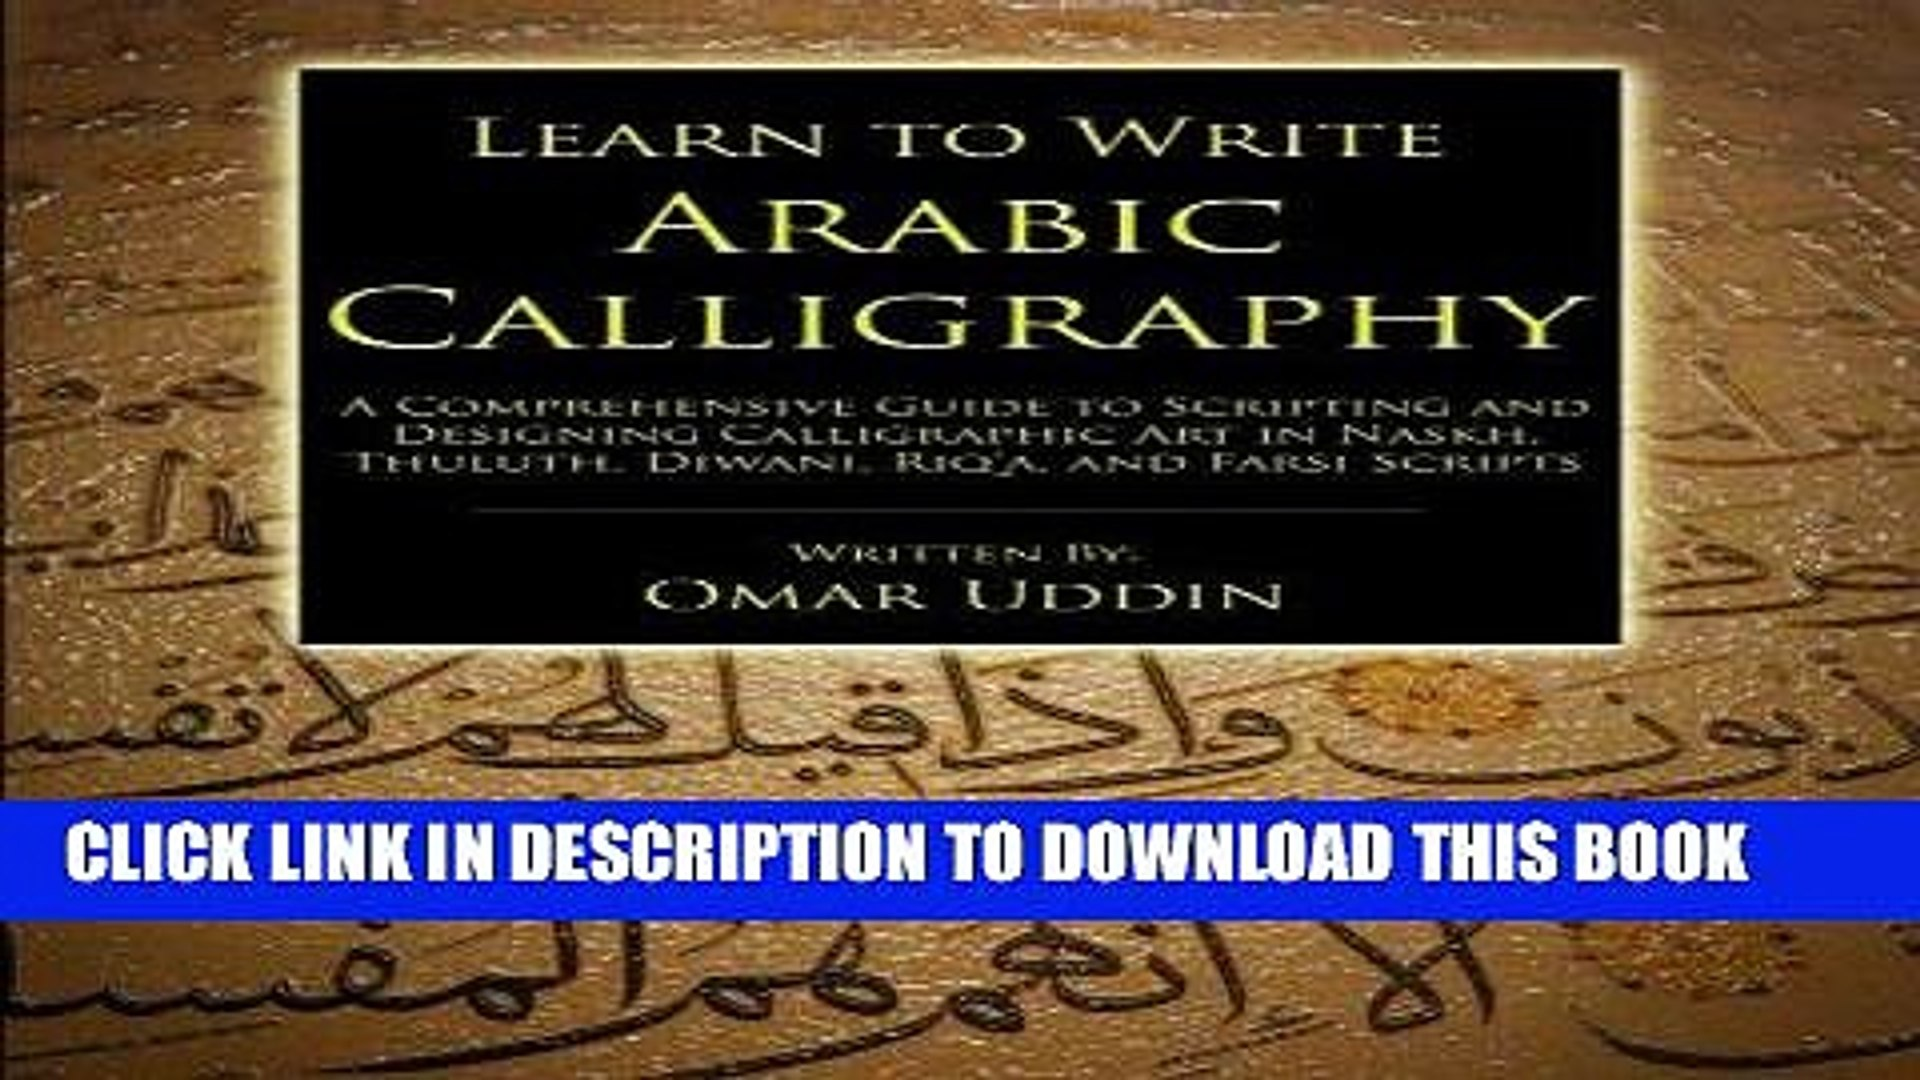 Pdf] learn to write arabic calligraphy popular collection video.